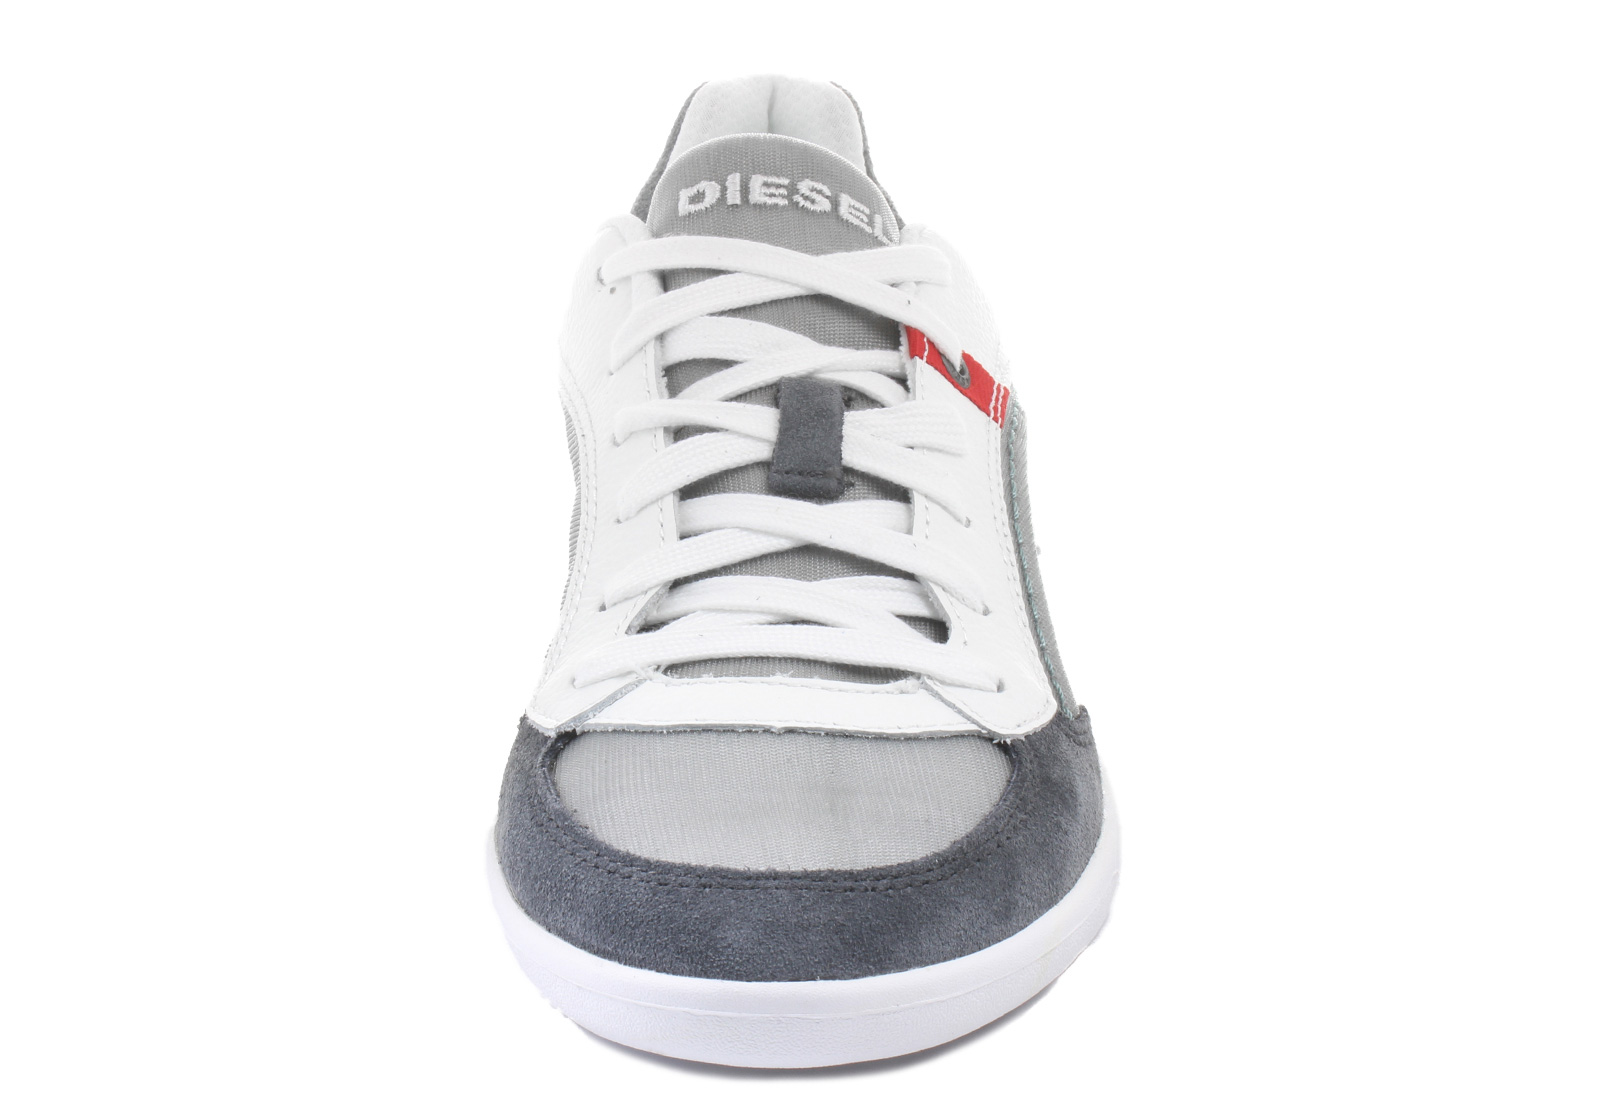 Diesel Shoes - Starch - 674-308-4776 - Online shop for ...